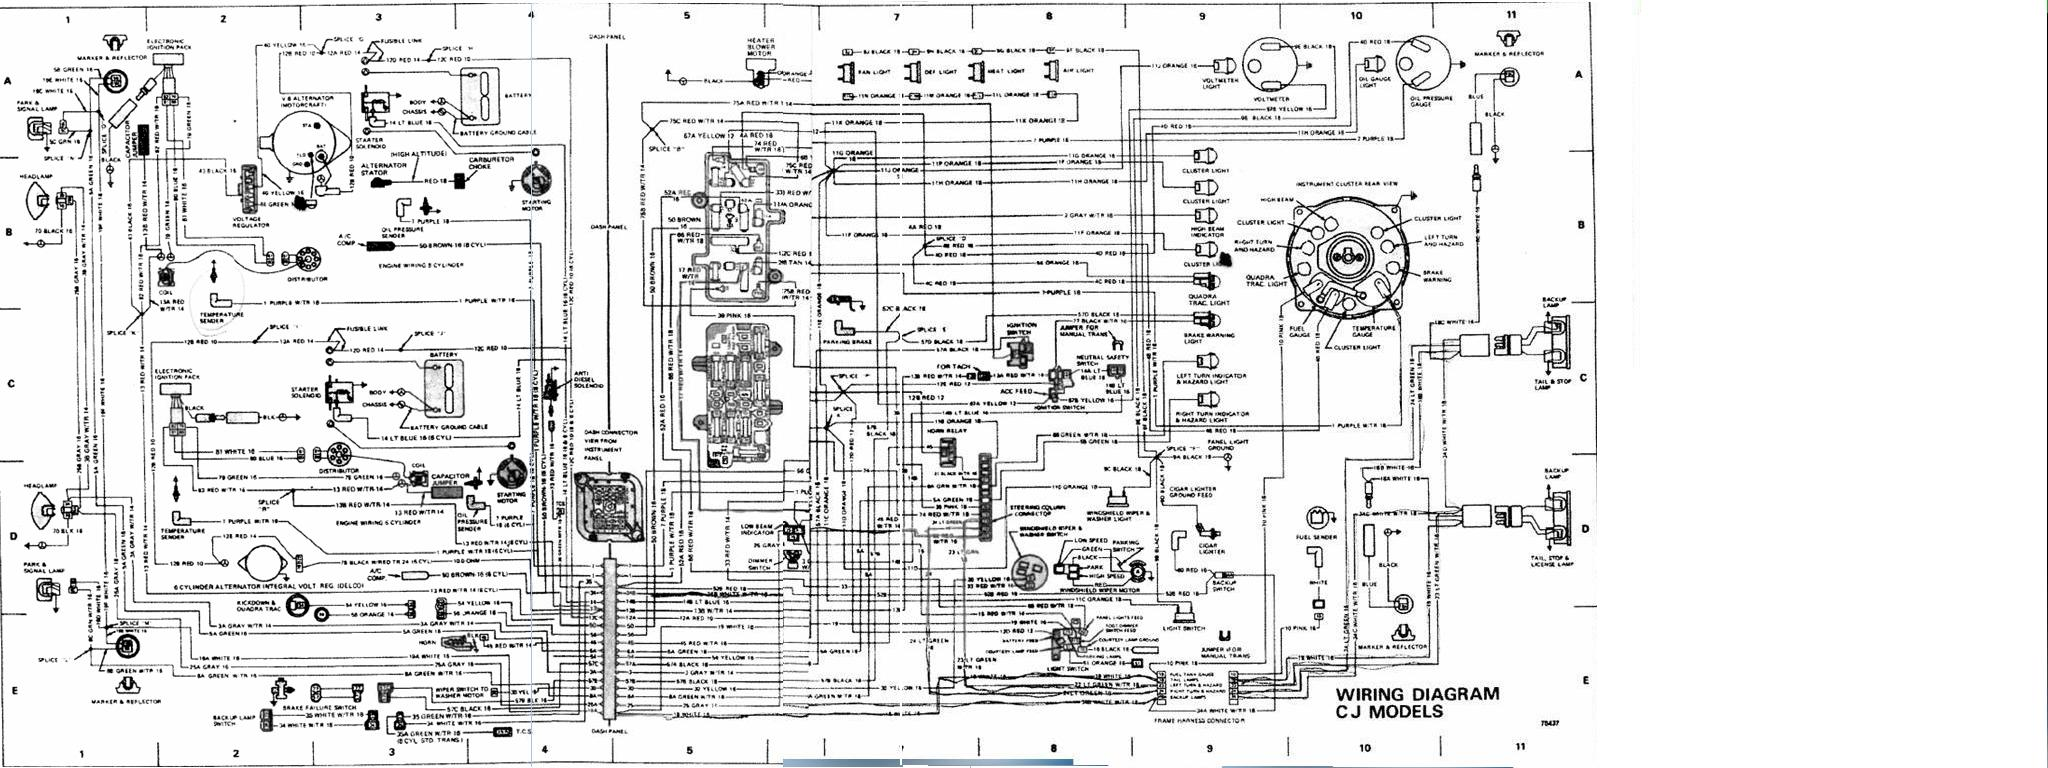 1982 Jeep Cj7 Wiring Help Wiring Diagram Meta